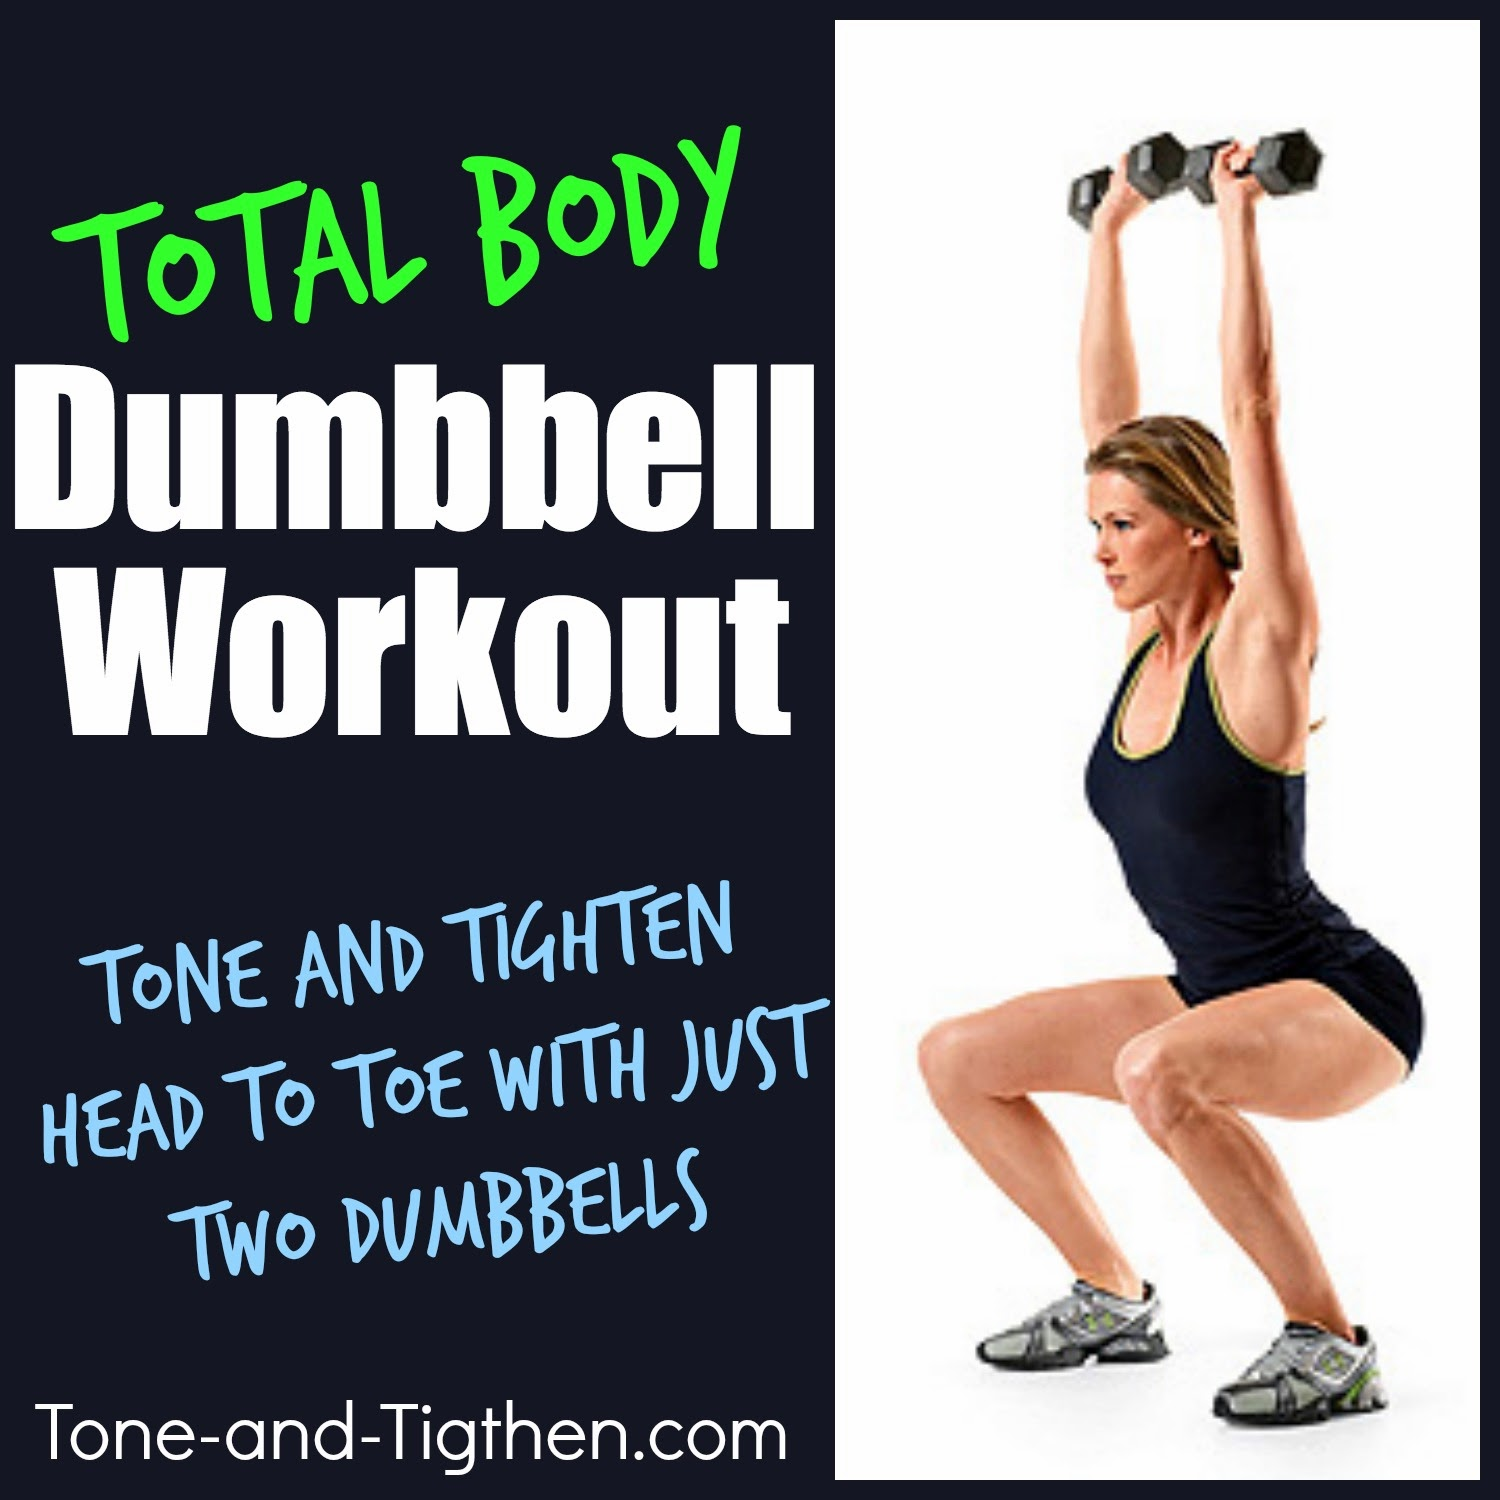 Total Body Dumbbell Workout The Most Comprehensive Out There